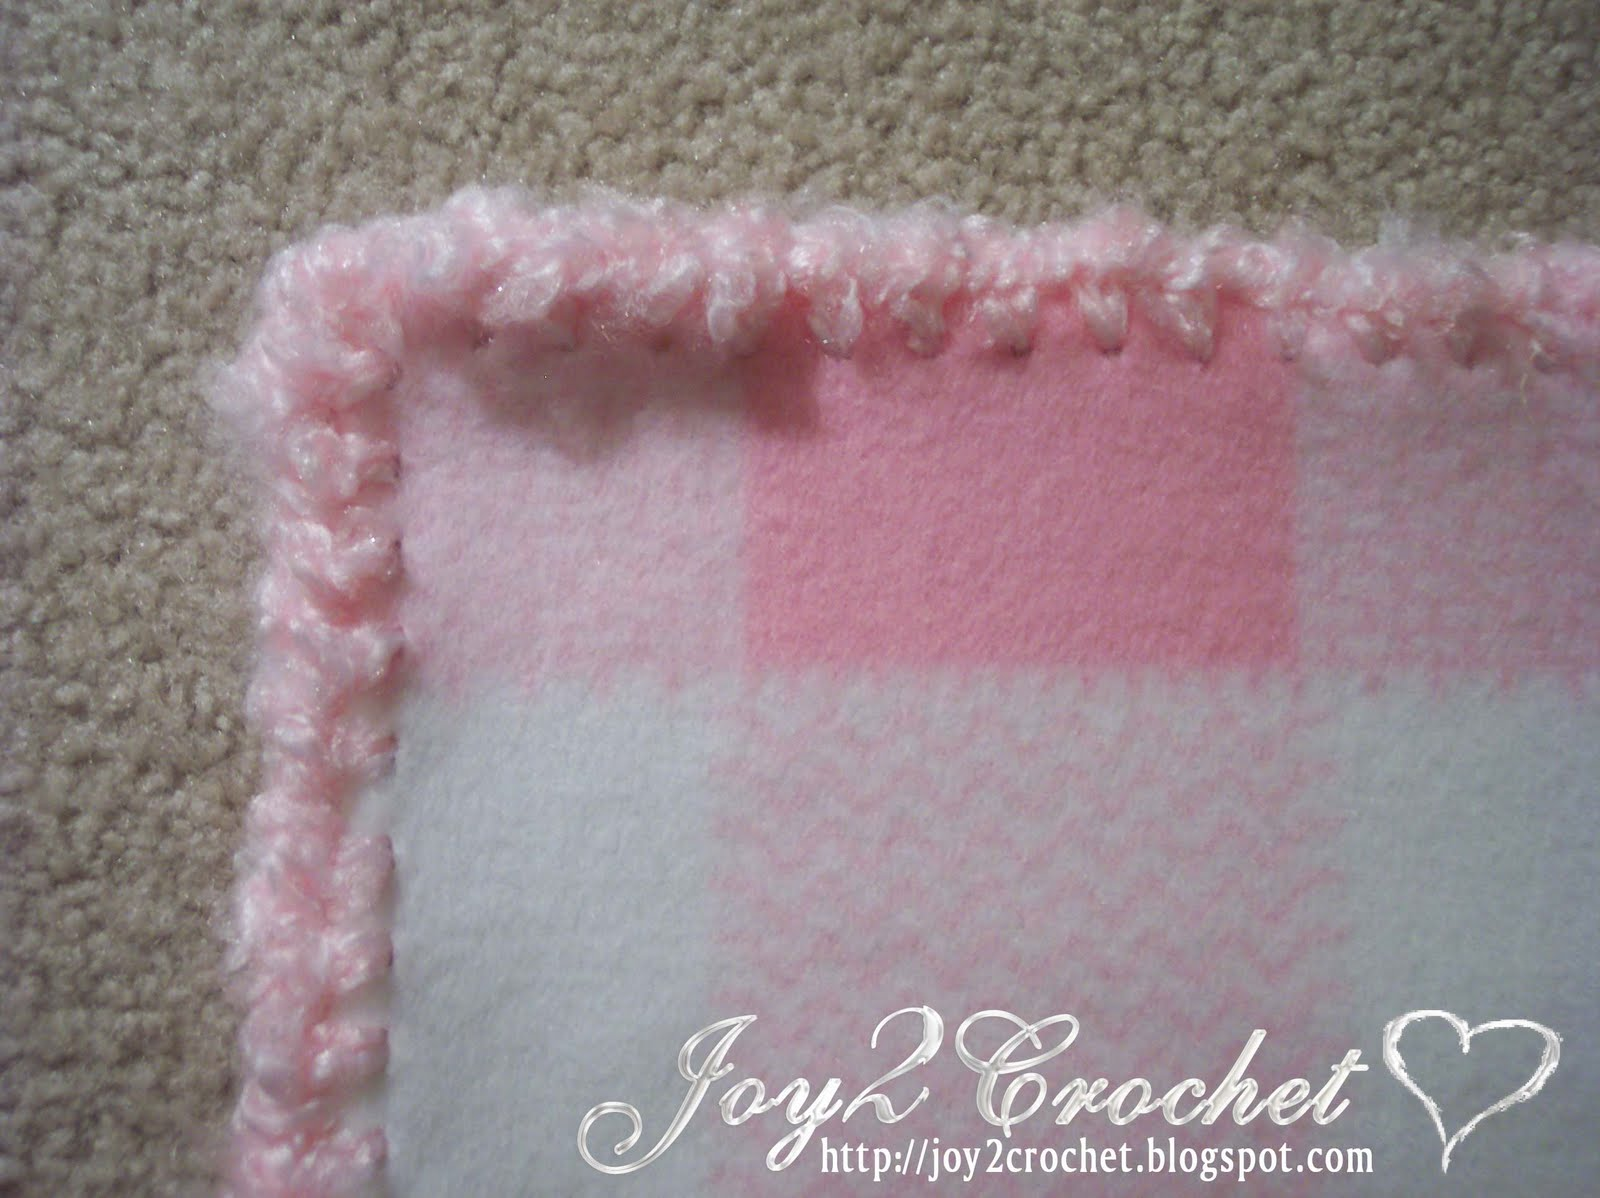 Crocheting Edges On Fleece Blankets : Joy 2 Crochet: More Crocheted Fleece Baby Blankets